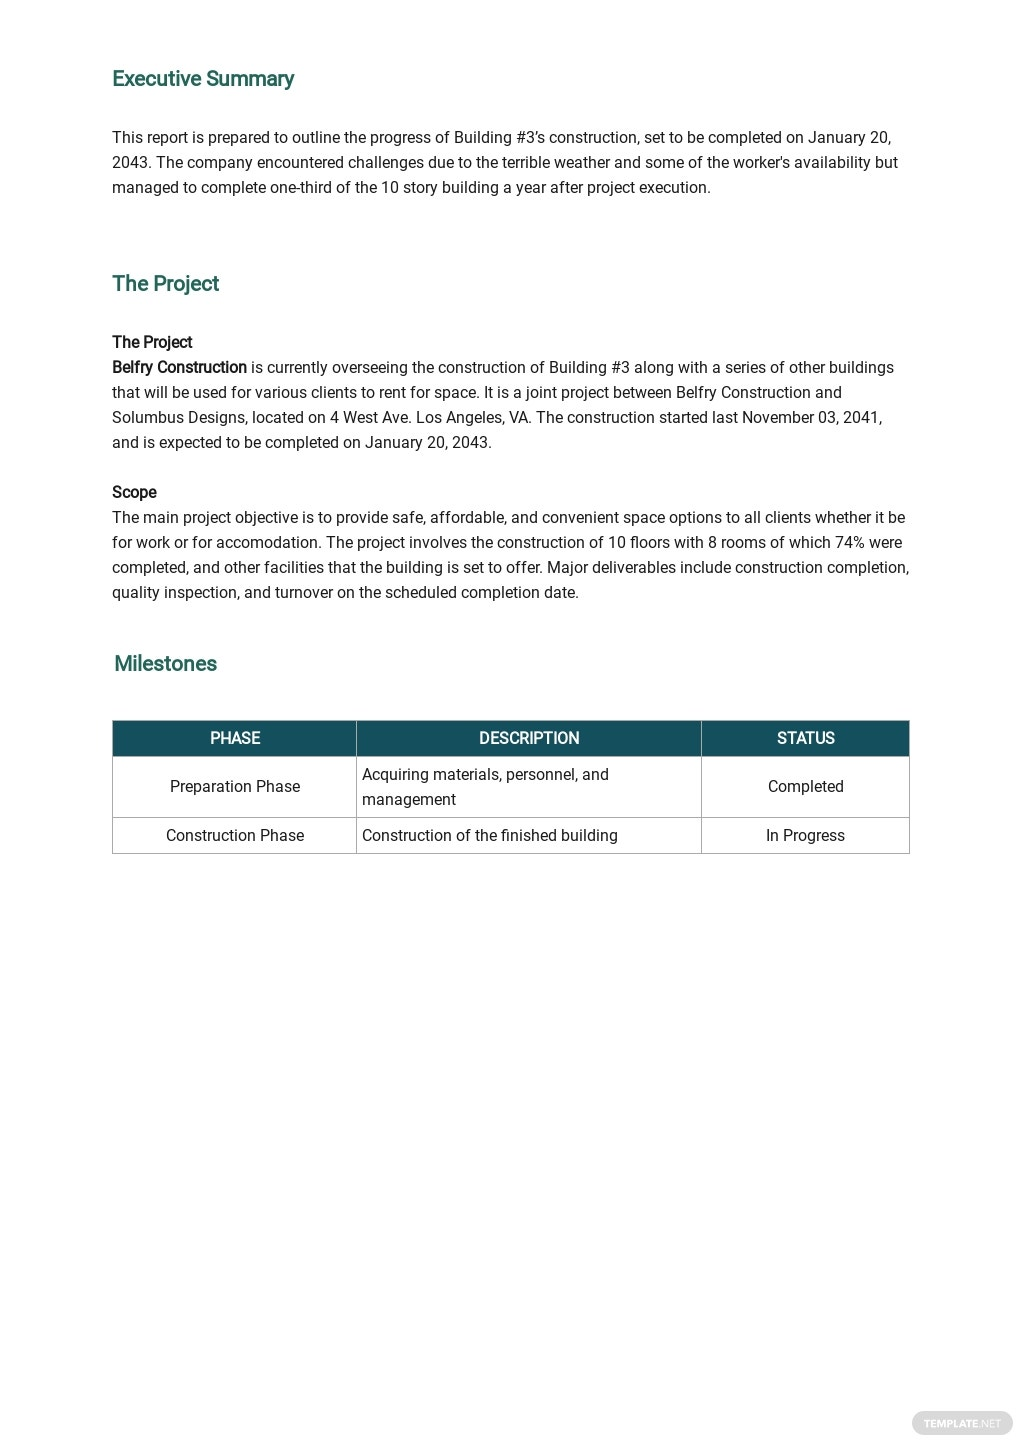 Free Daily Progress Report for Building Construction Template 1.jpe